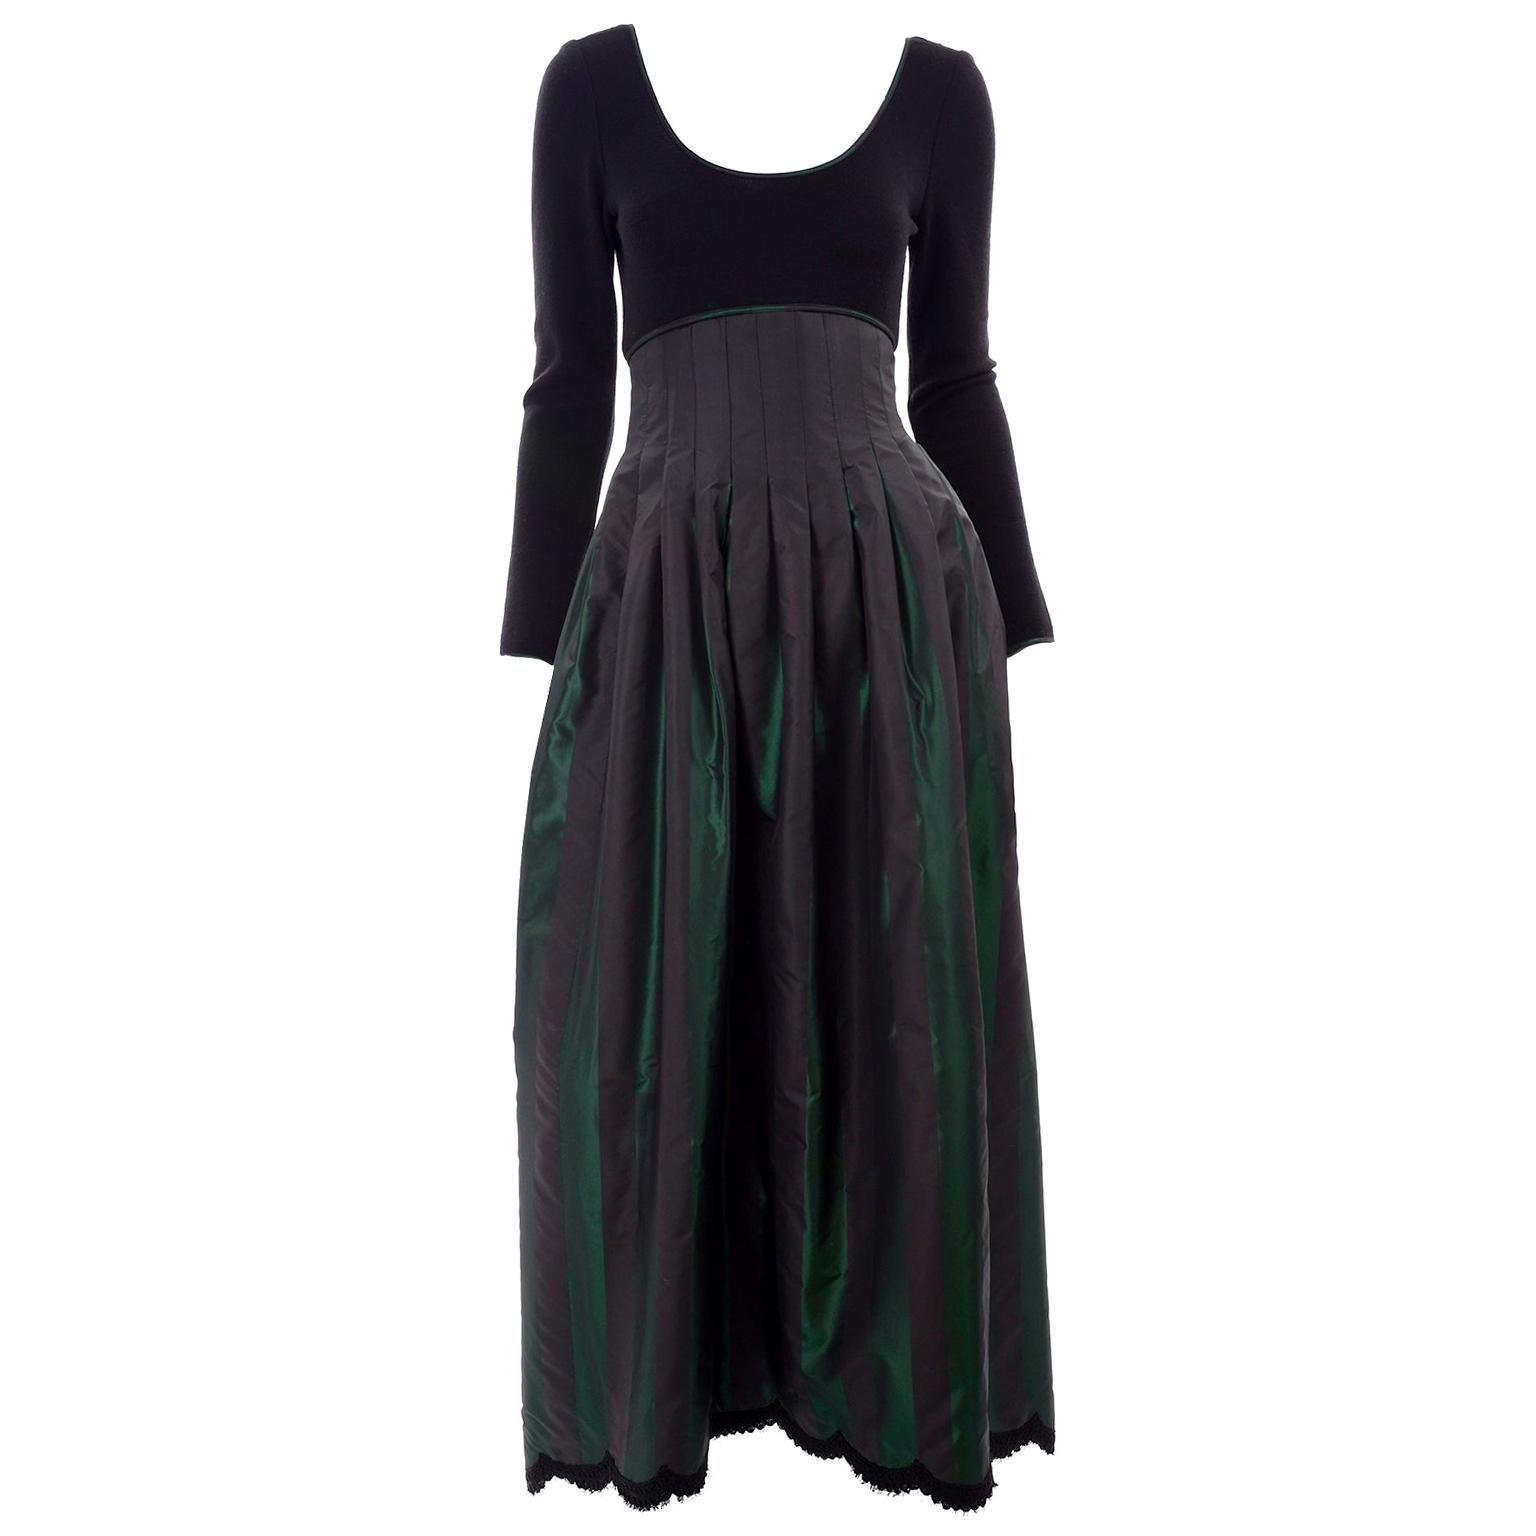 F/W 1989 Geoffrey Beene Black & Iridescent Green Stripe Evening Dress